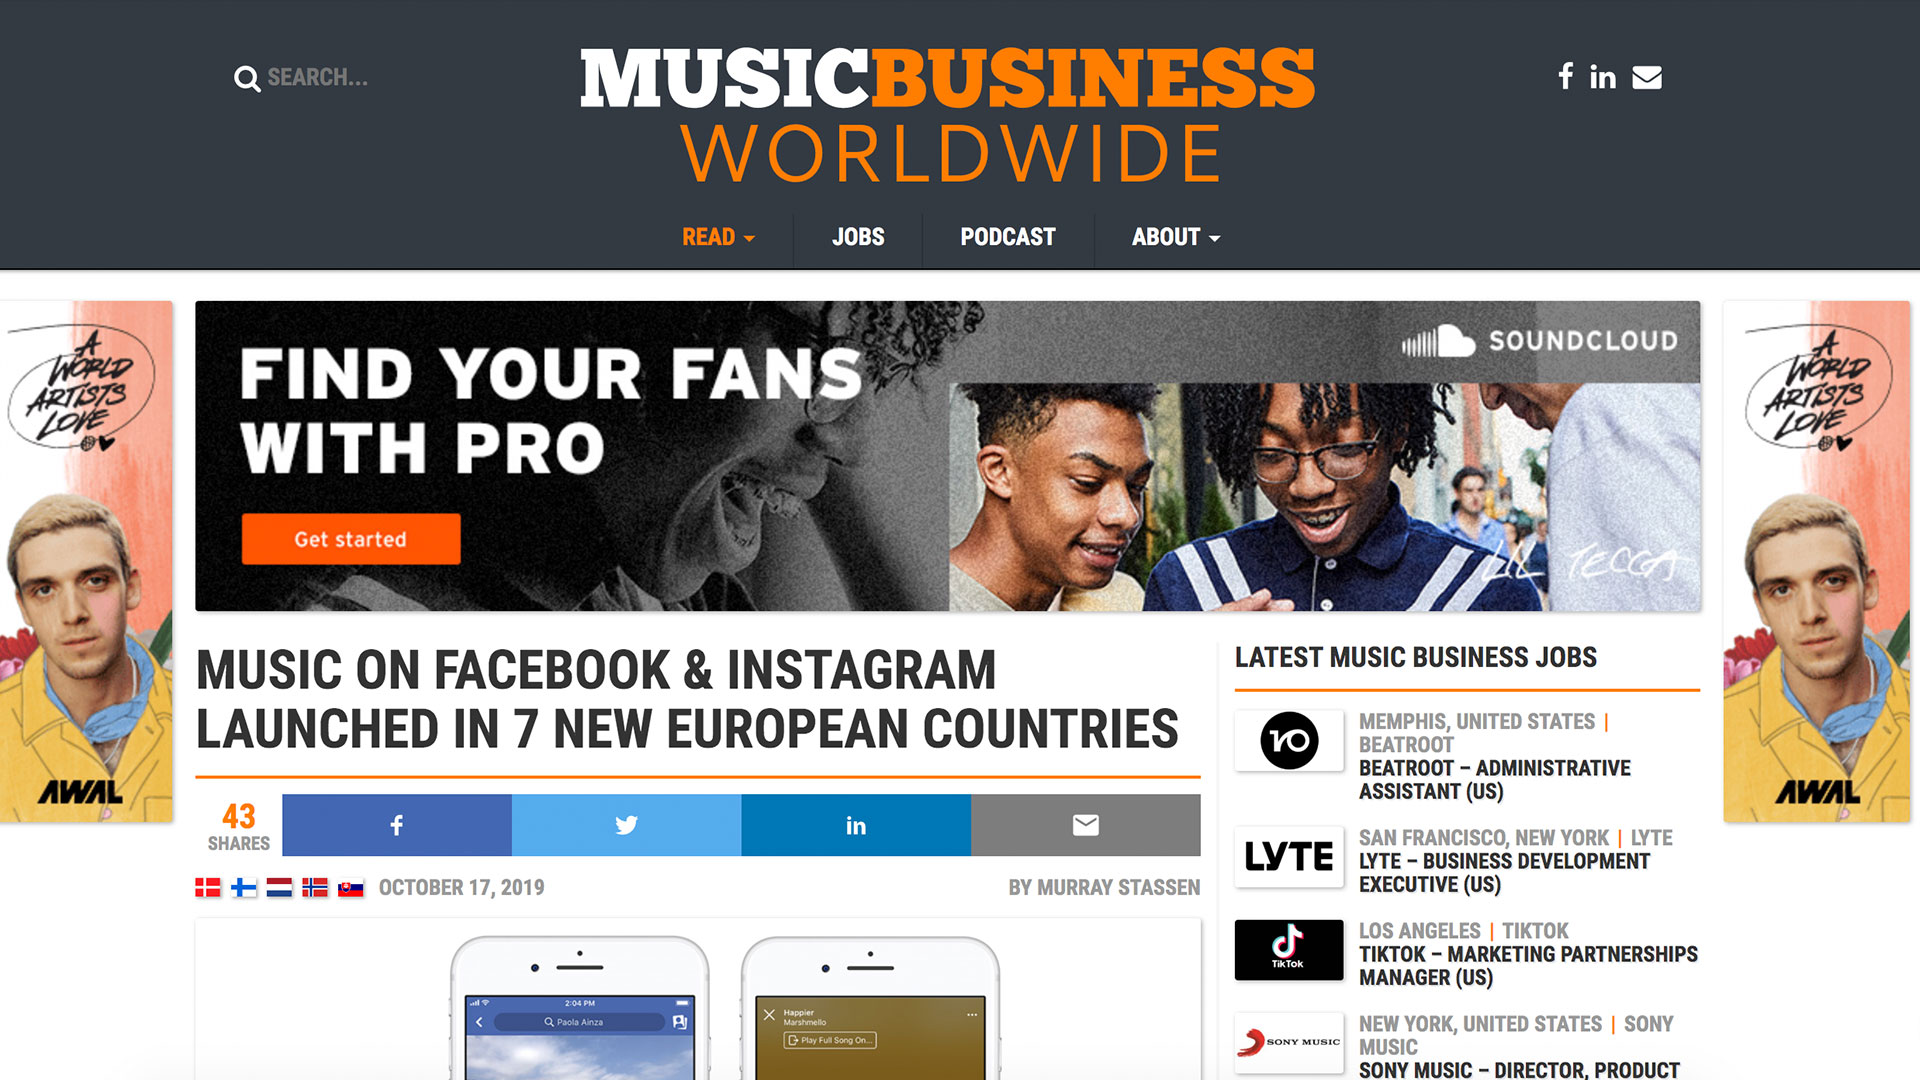 Fairness Rocks News MUSIC ON FACEBOOK & INSTAGRAM LAUNCHED IN 7 NEW EUROPEAN COUNTRIES